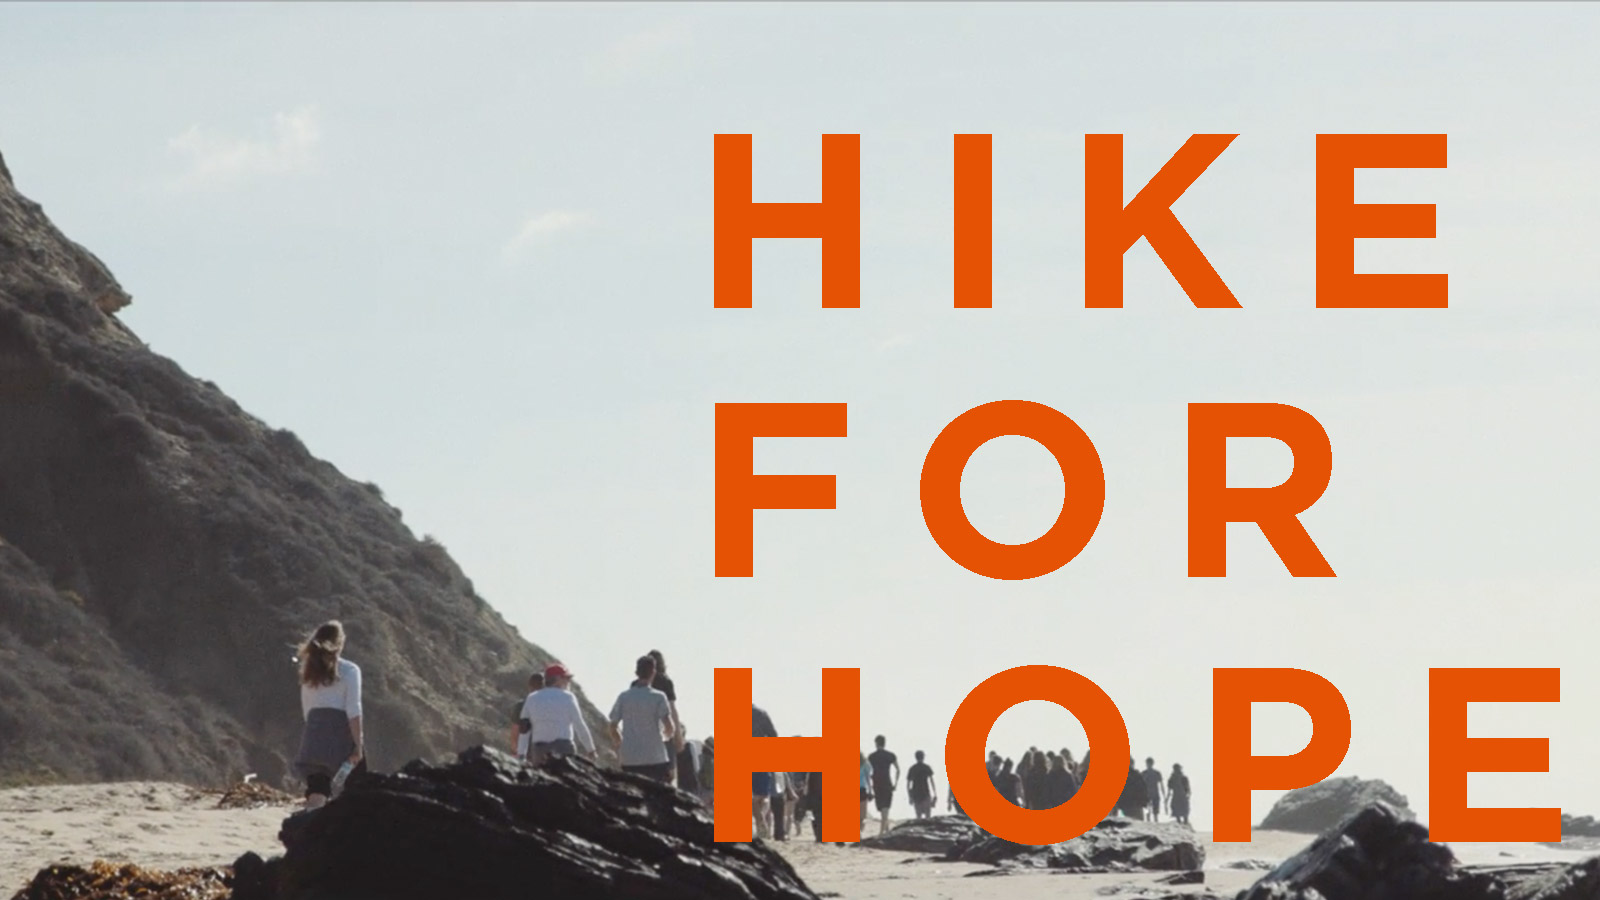 Hike for Hope - Join the Movement